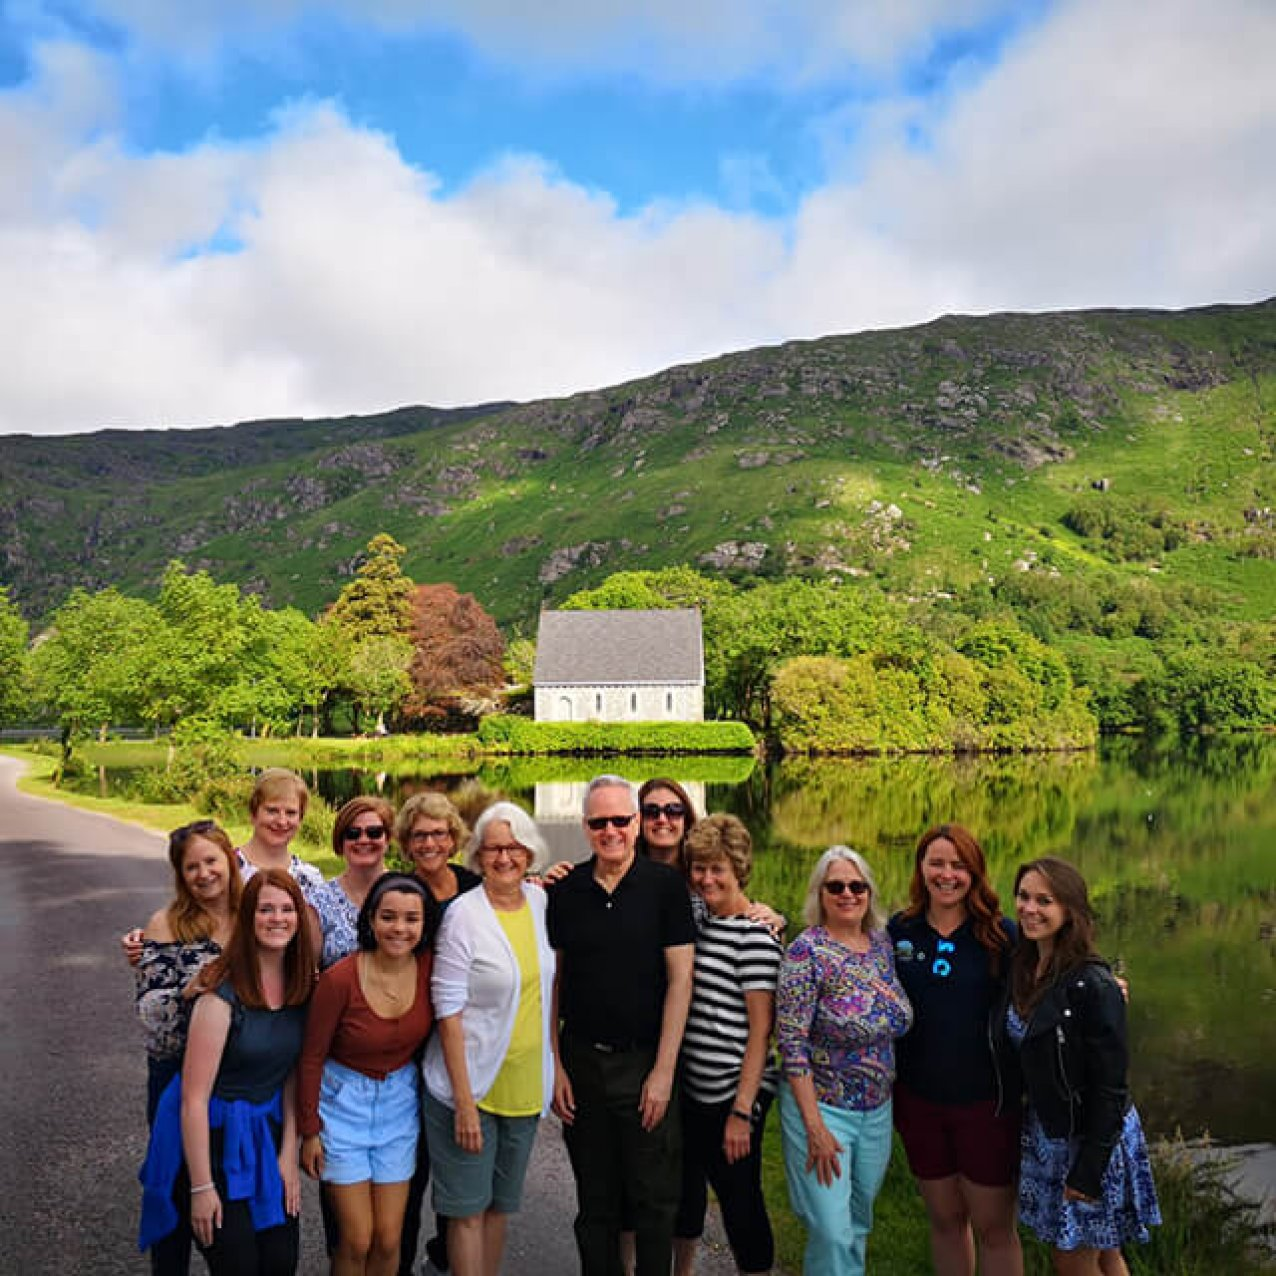 A Driftwood group taking a group photo in front of the lake at Gougane Barra